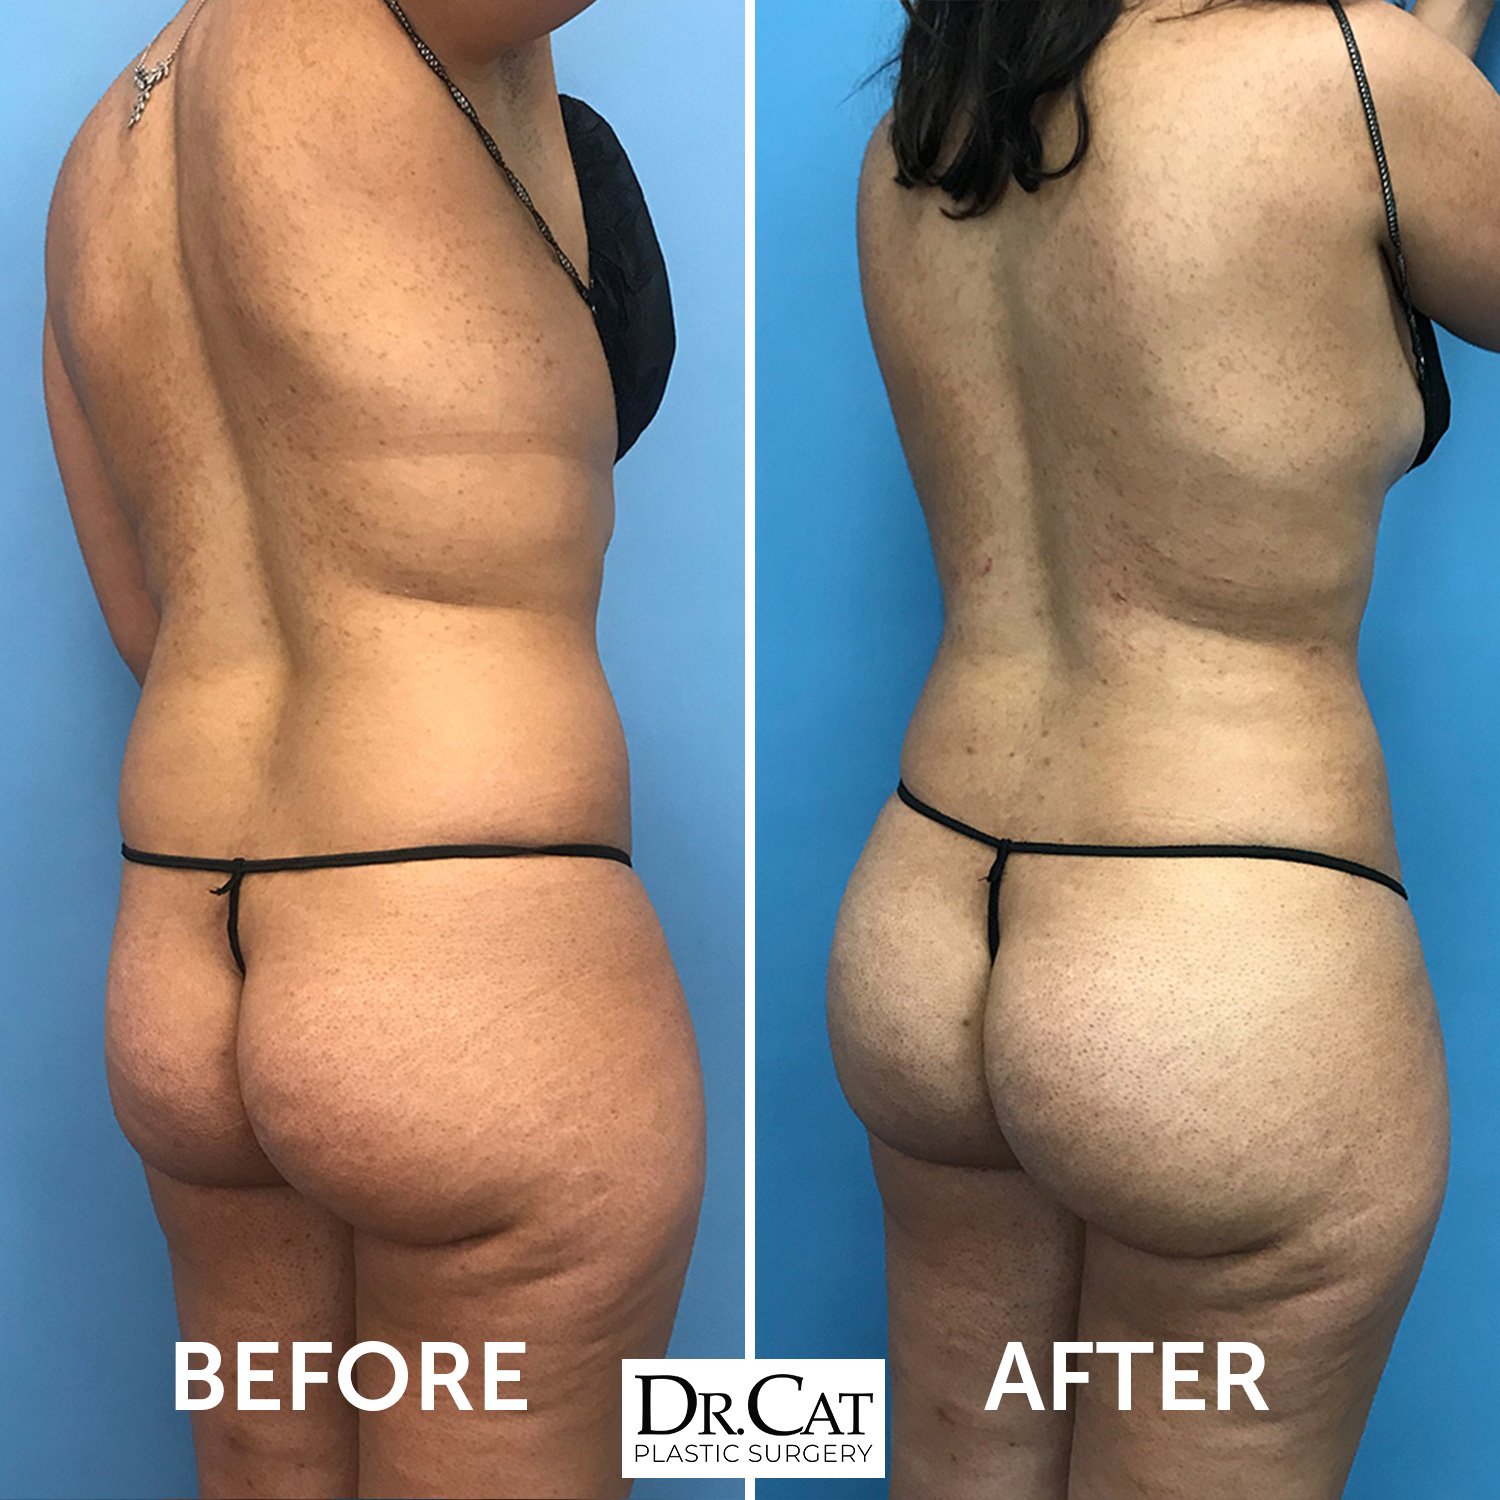 Brazilian Butt Lift Before and After Image